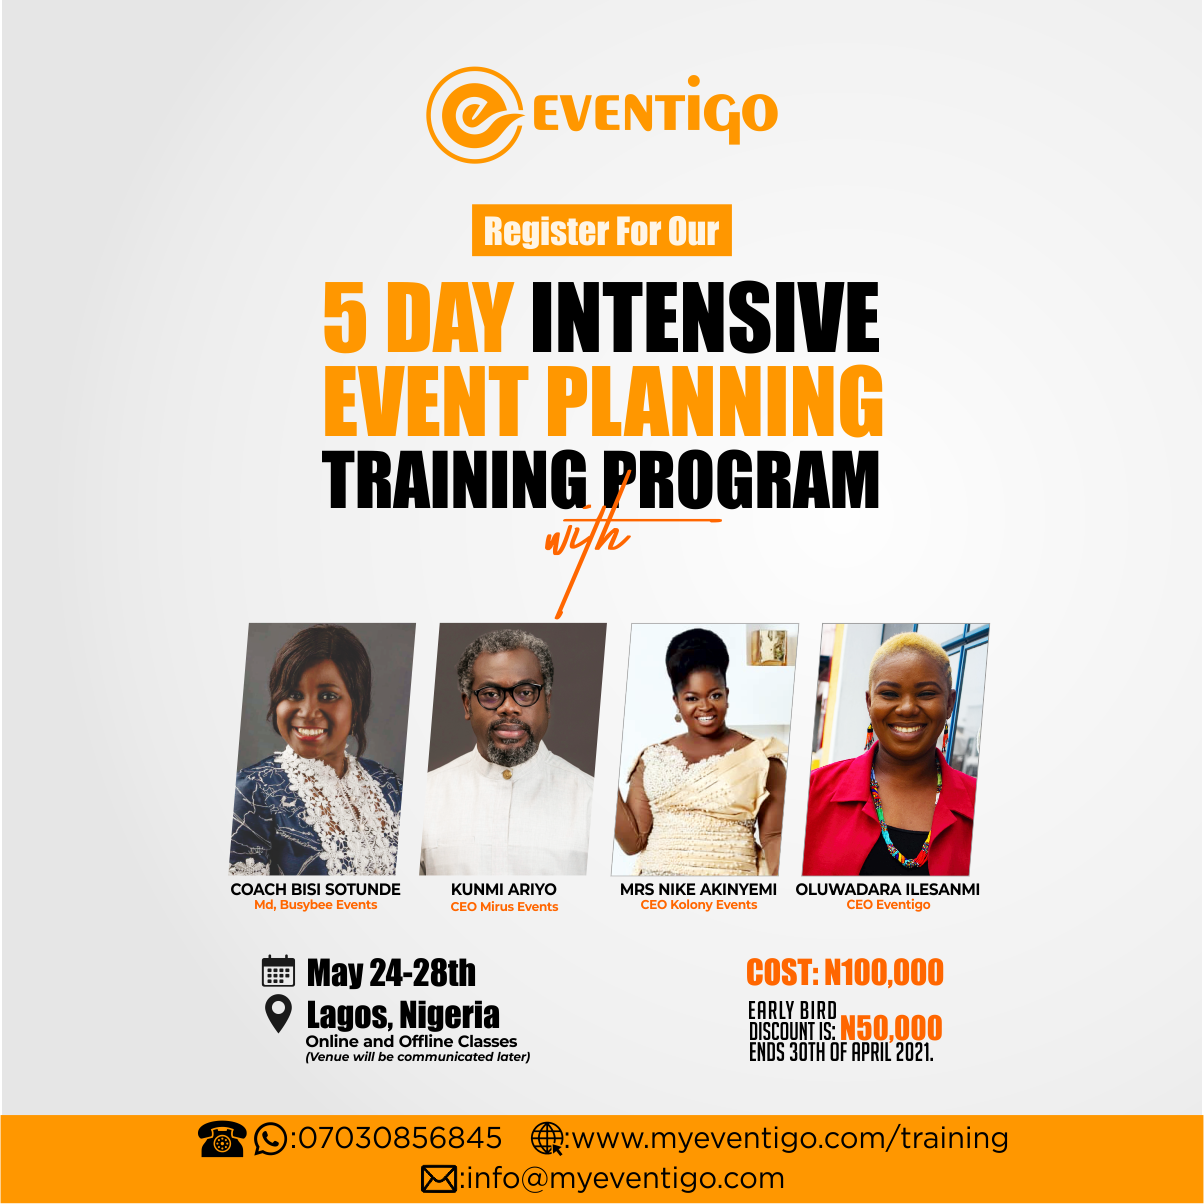 Event Planning Training Post free event in Nigeria using tickethub.ng, buy and sell tickets to event